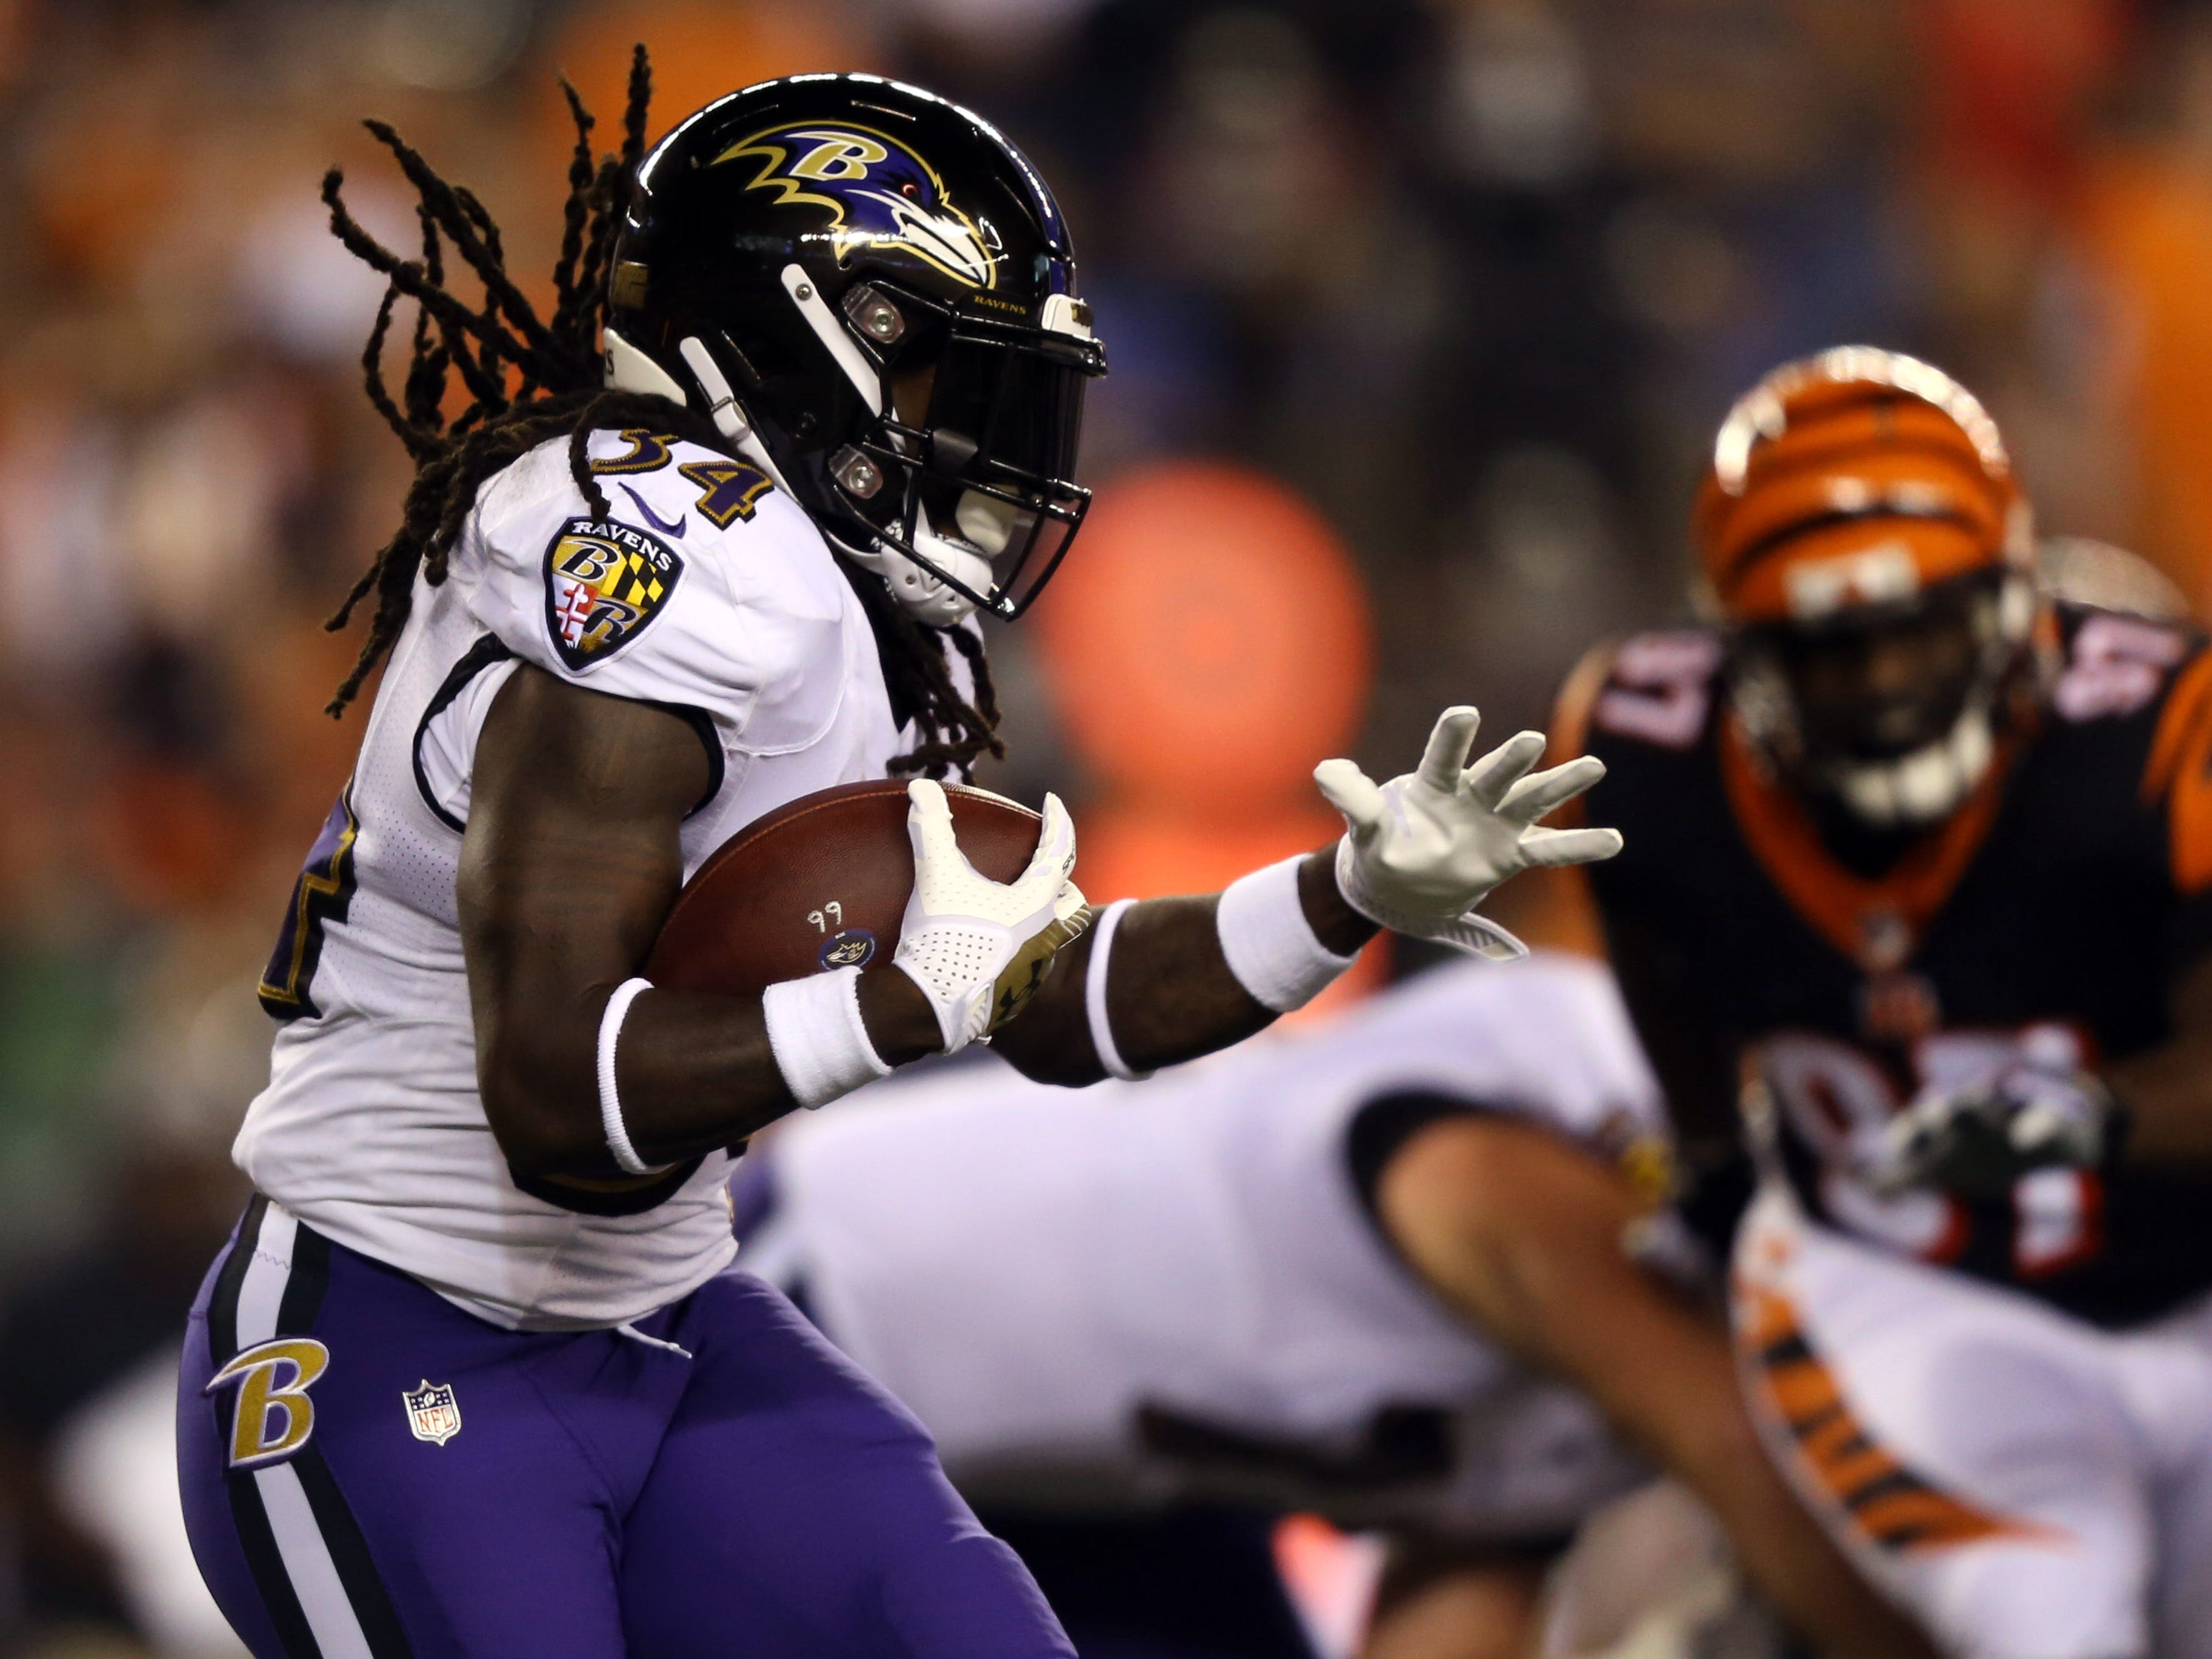 Ravens running back Alex Collins carries the ball against the Bengals in the first half at Paul Brown Stadium.